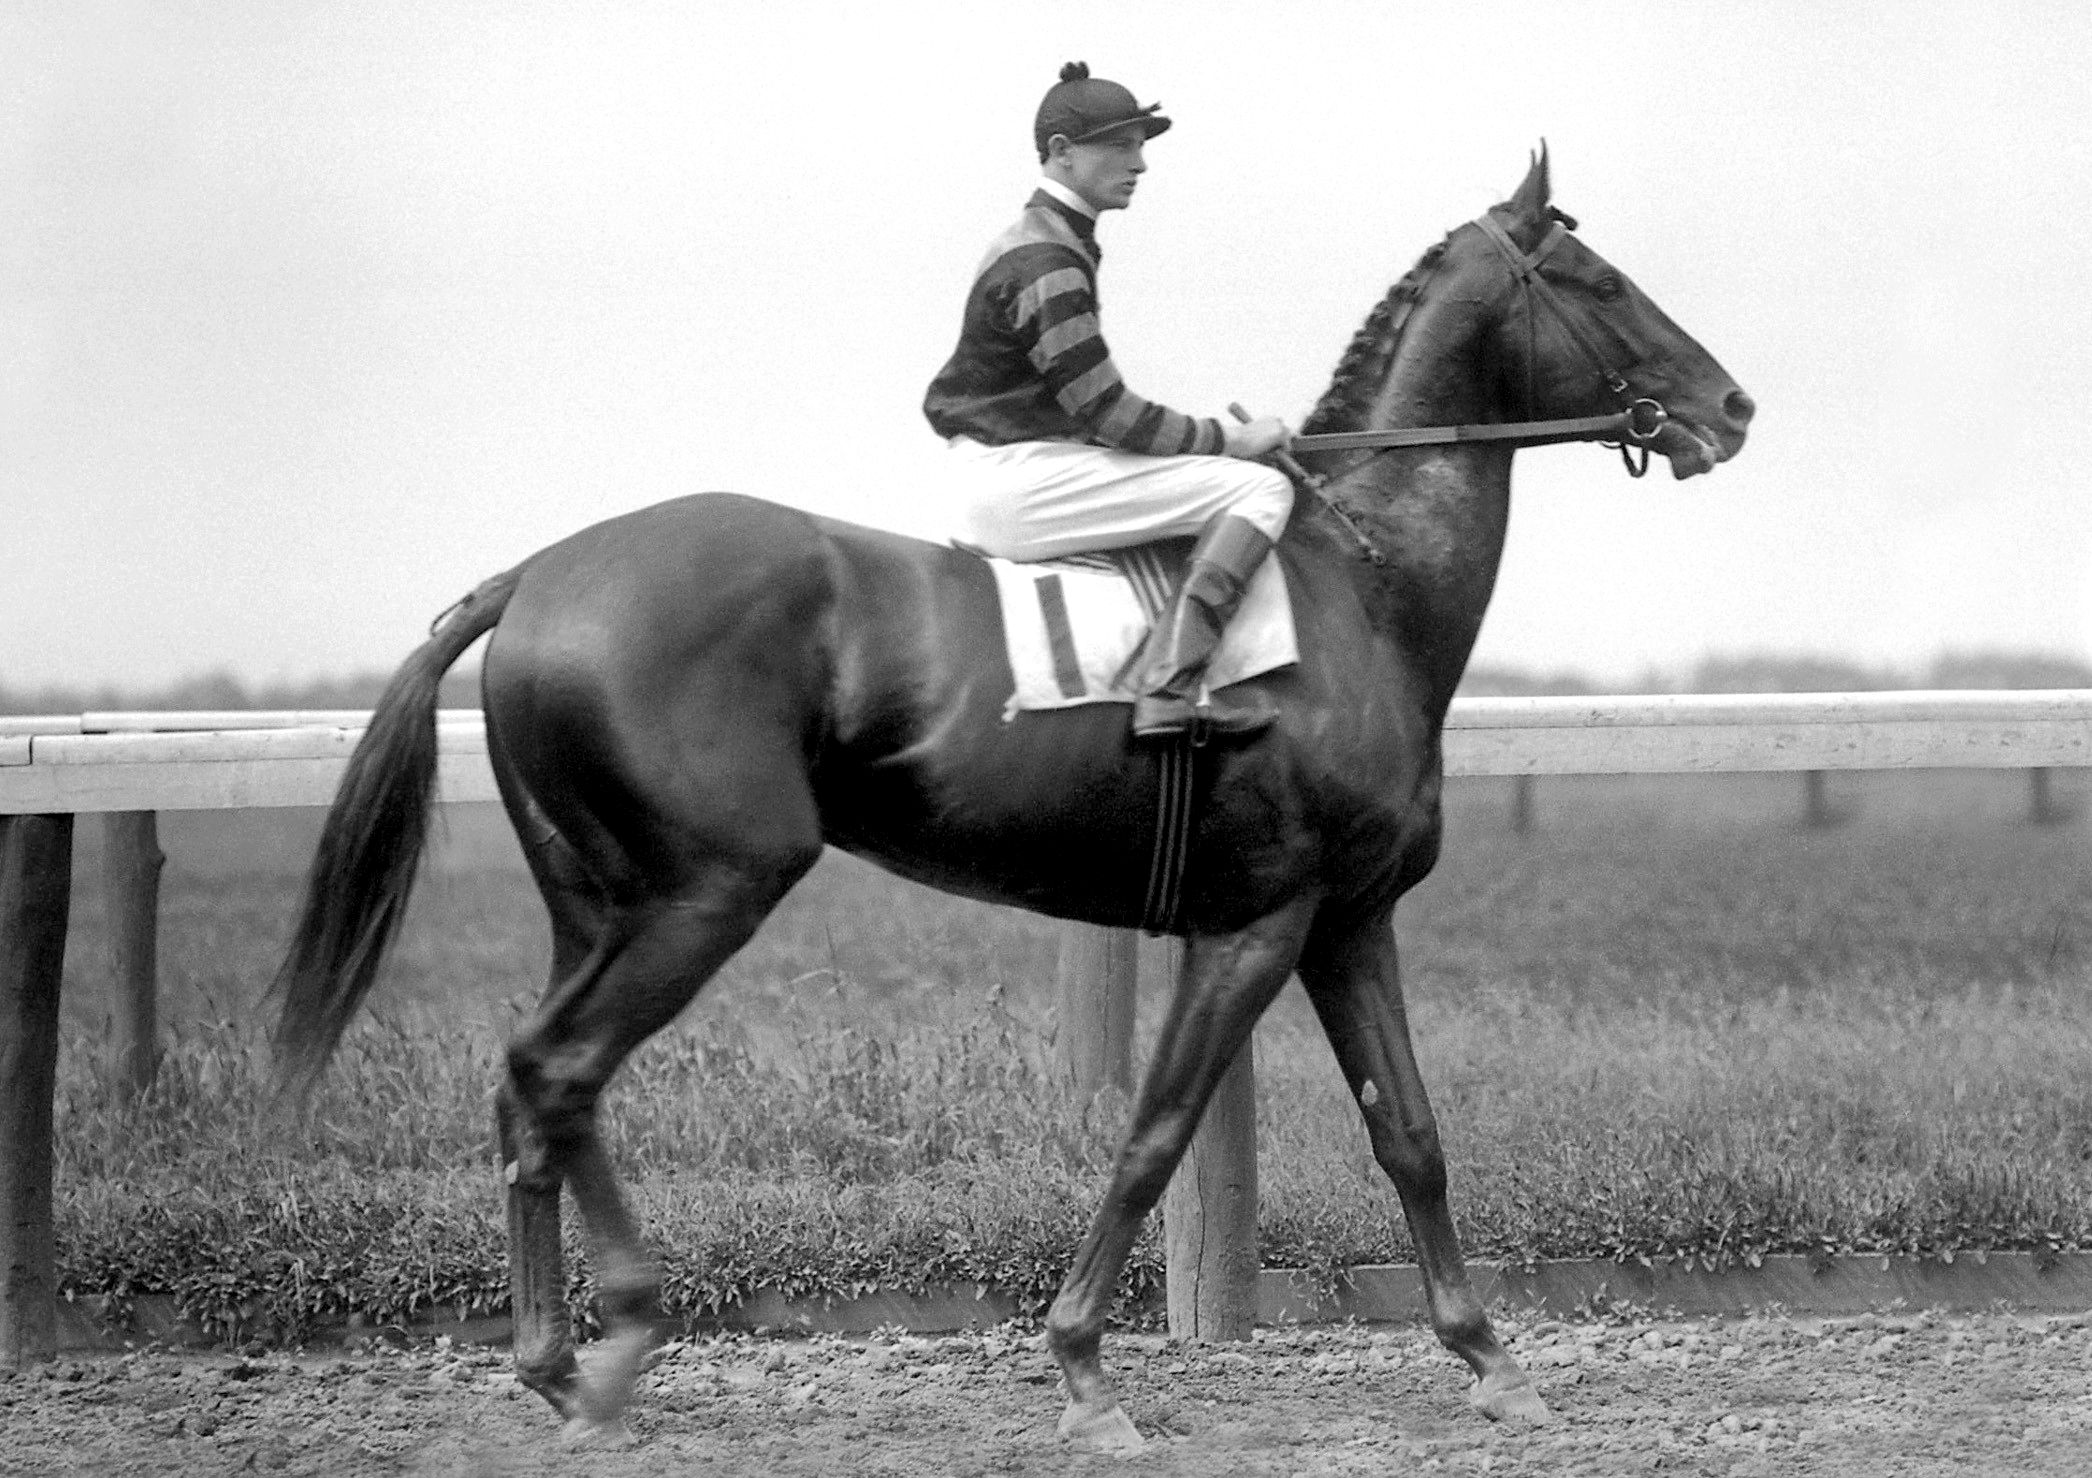 Man o' War with Clarence Kummer up (Keeneland Library Cook Collection)